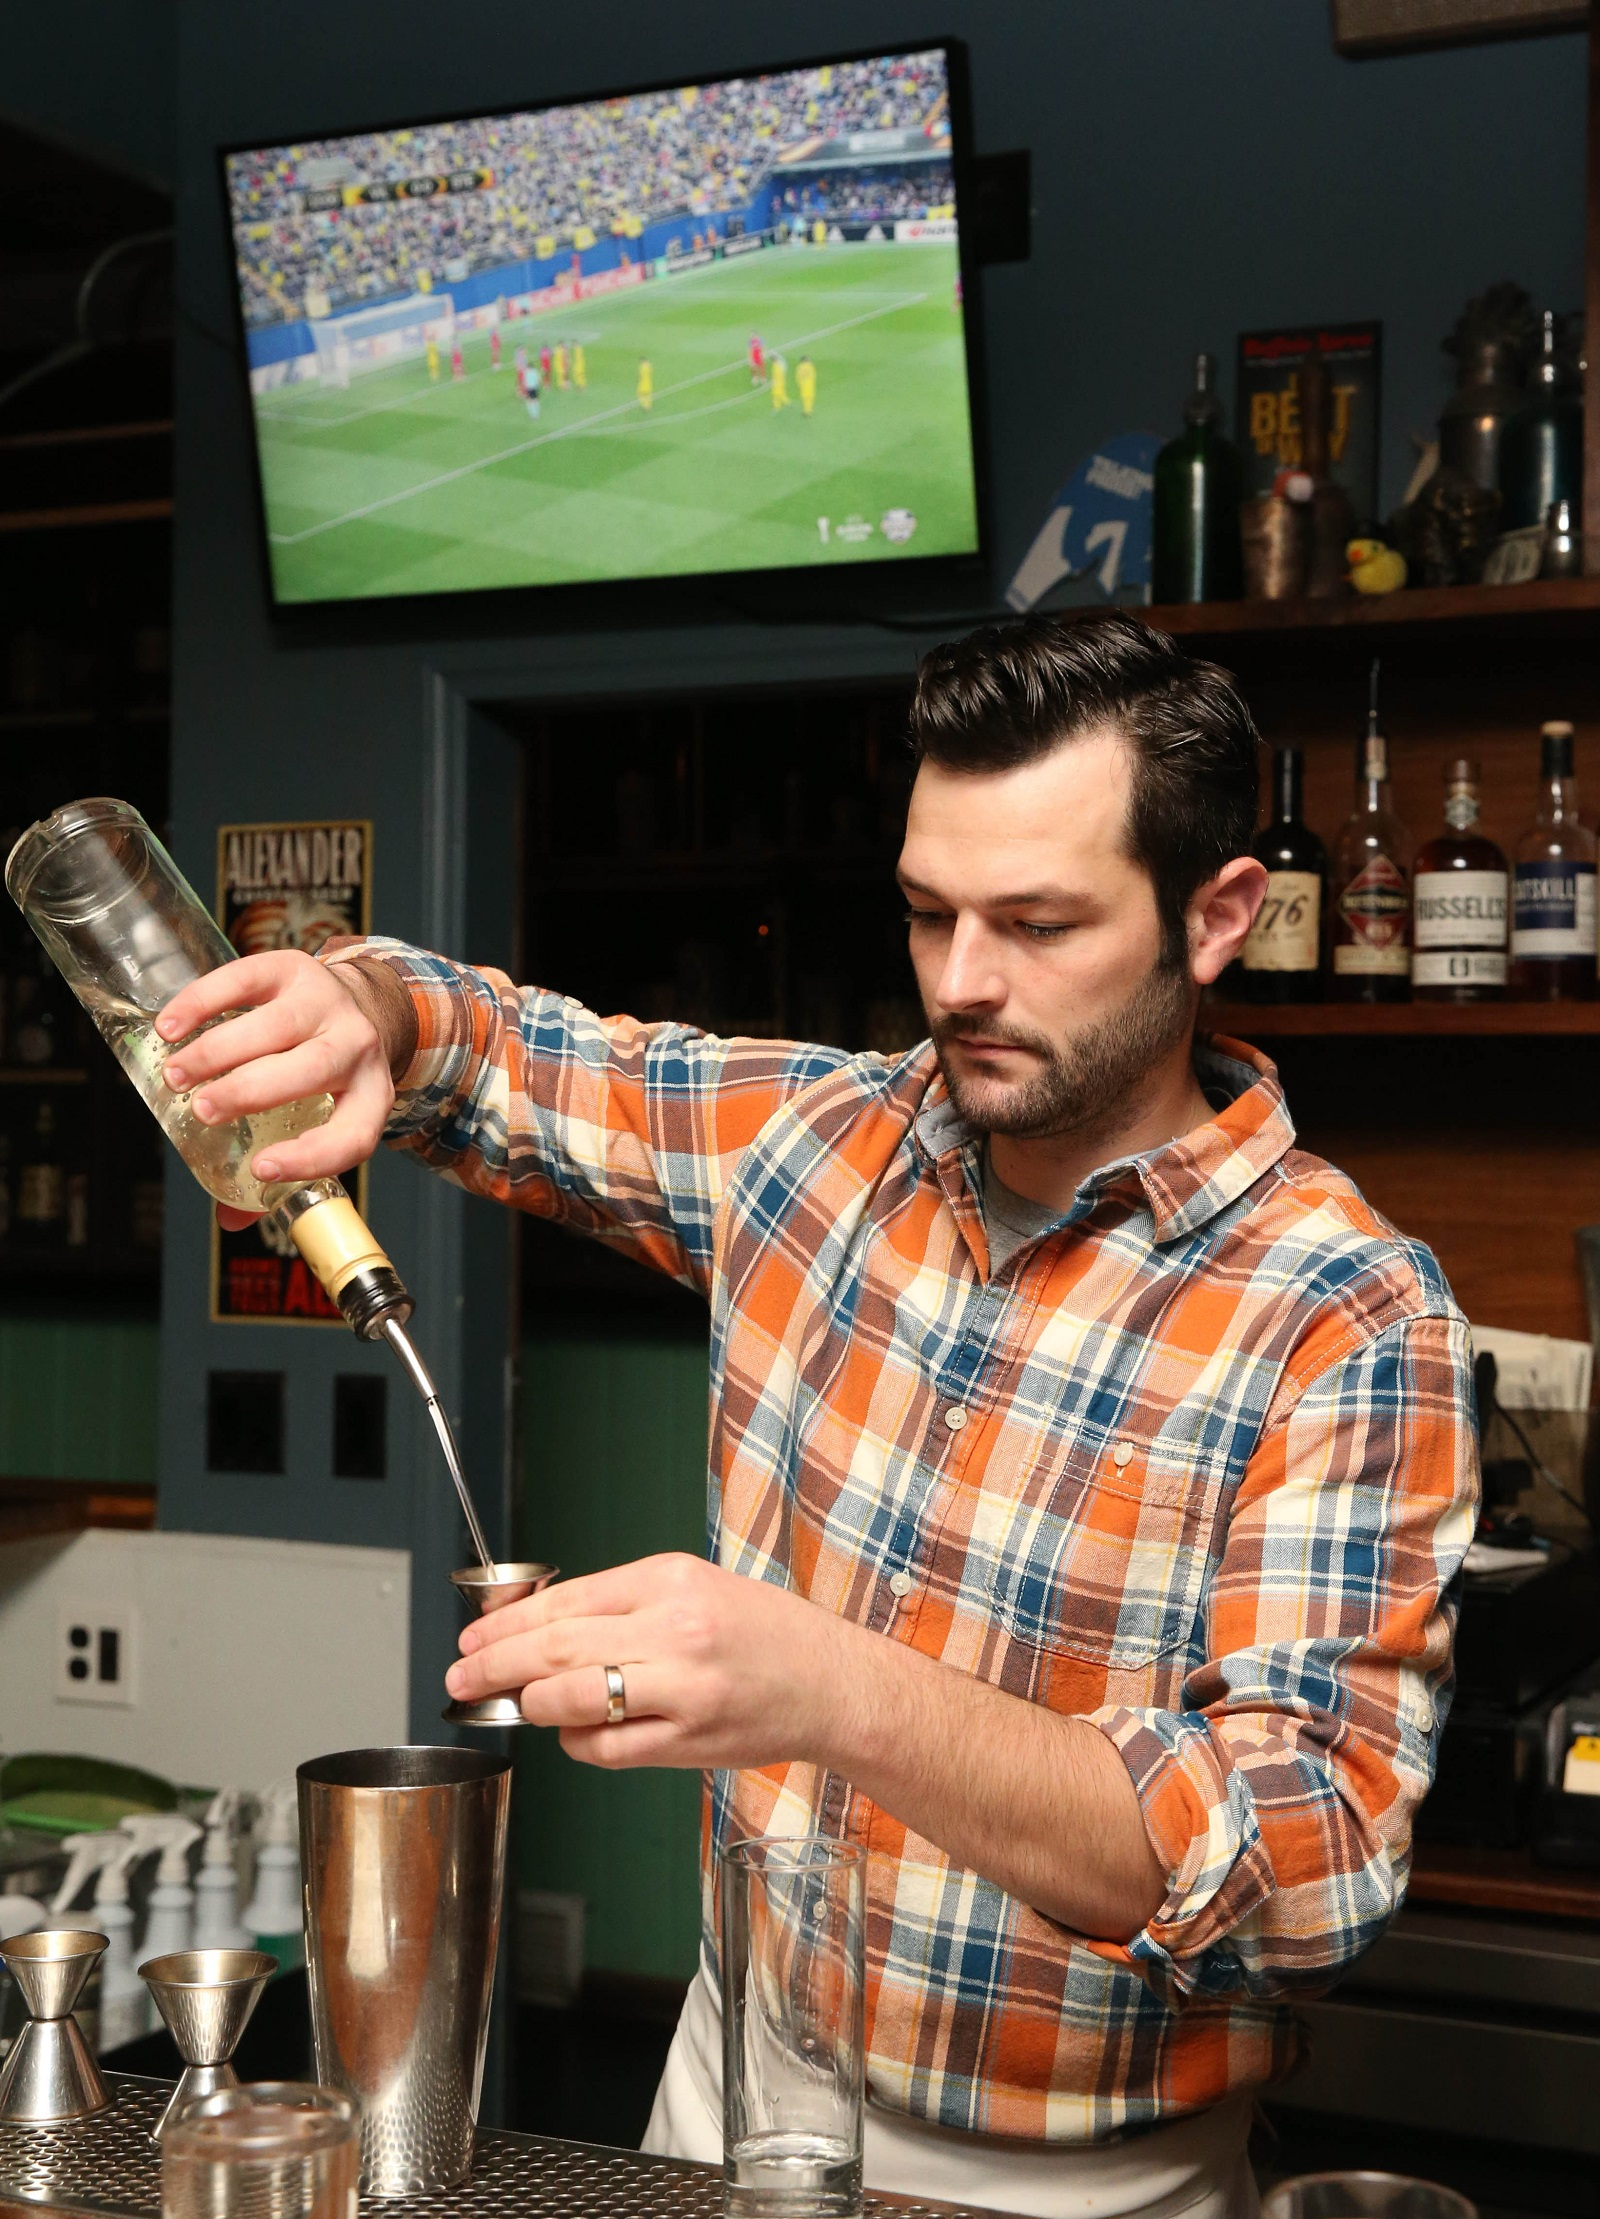 Ballyhoo bar manager Frank Pusateri makes a drink while a soccer game is being played on the TVs. (Sharon Cantillon/Buffalo News)